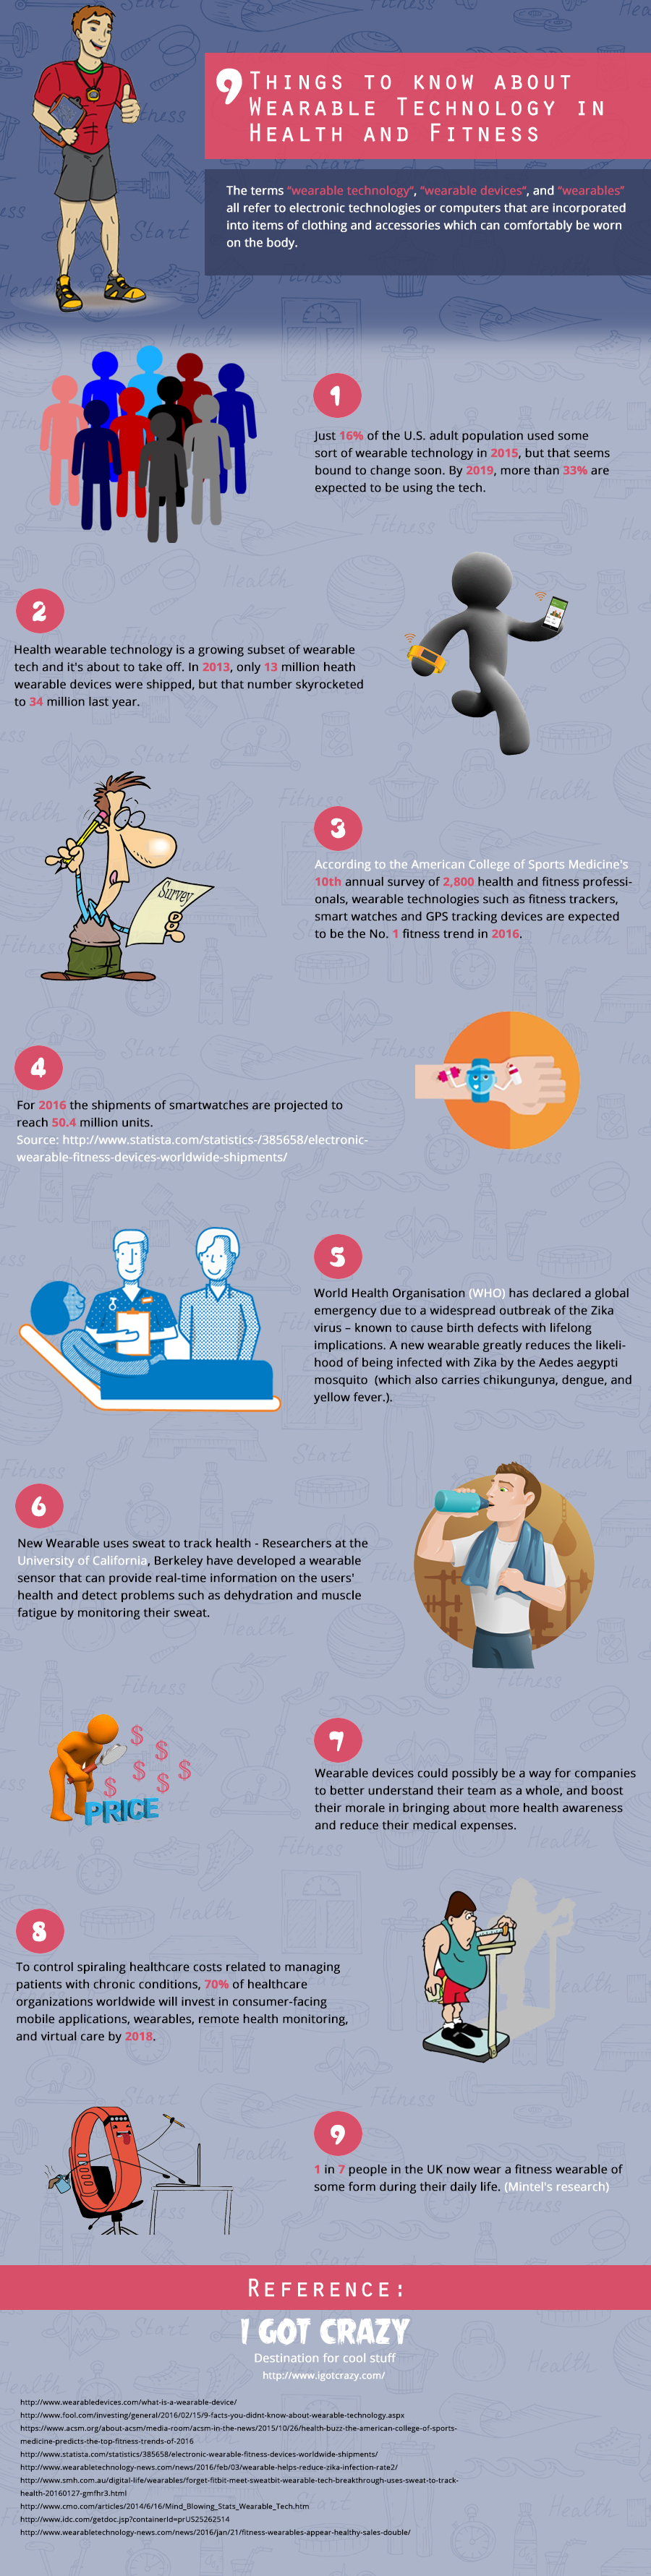 9-Facts-and-Statistics-on-Wearable-Technology-An-Infographic